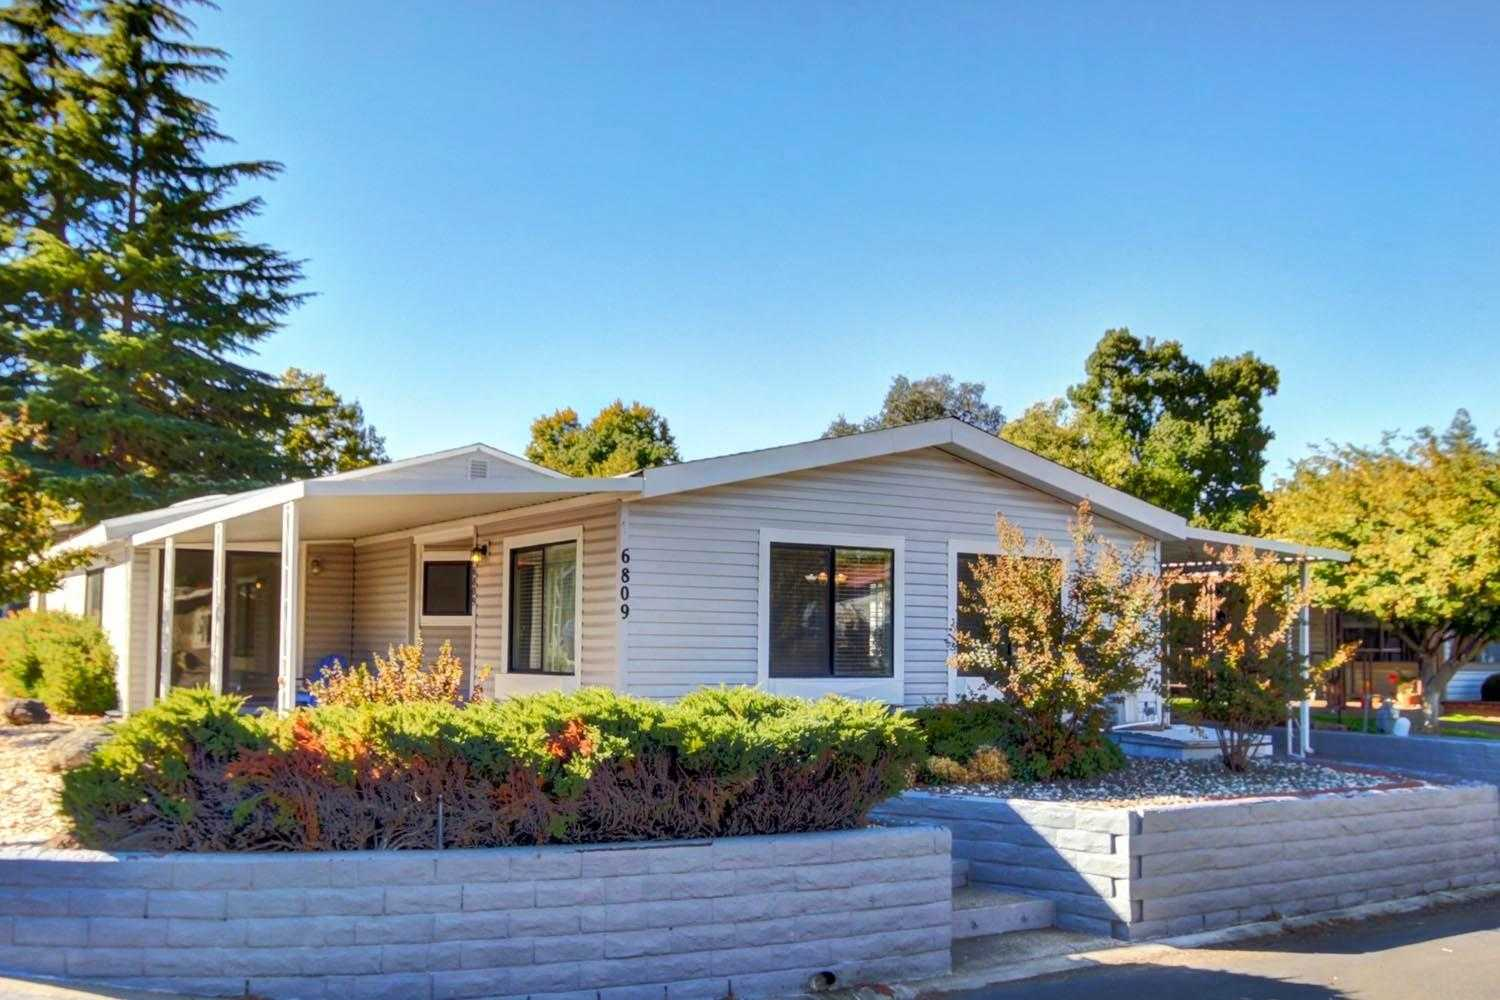 $160,000 - 2Br/2Ba -  for Sale in Citrus Heights